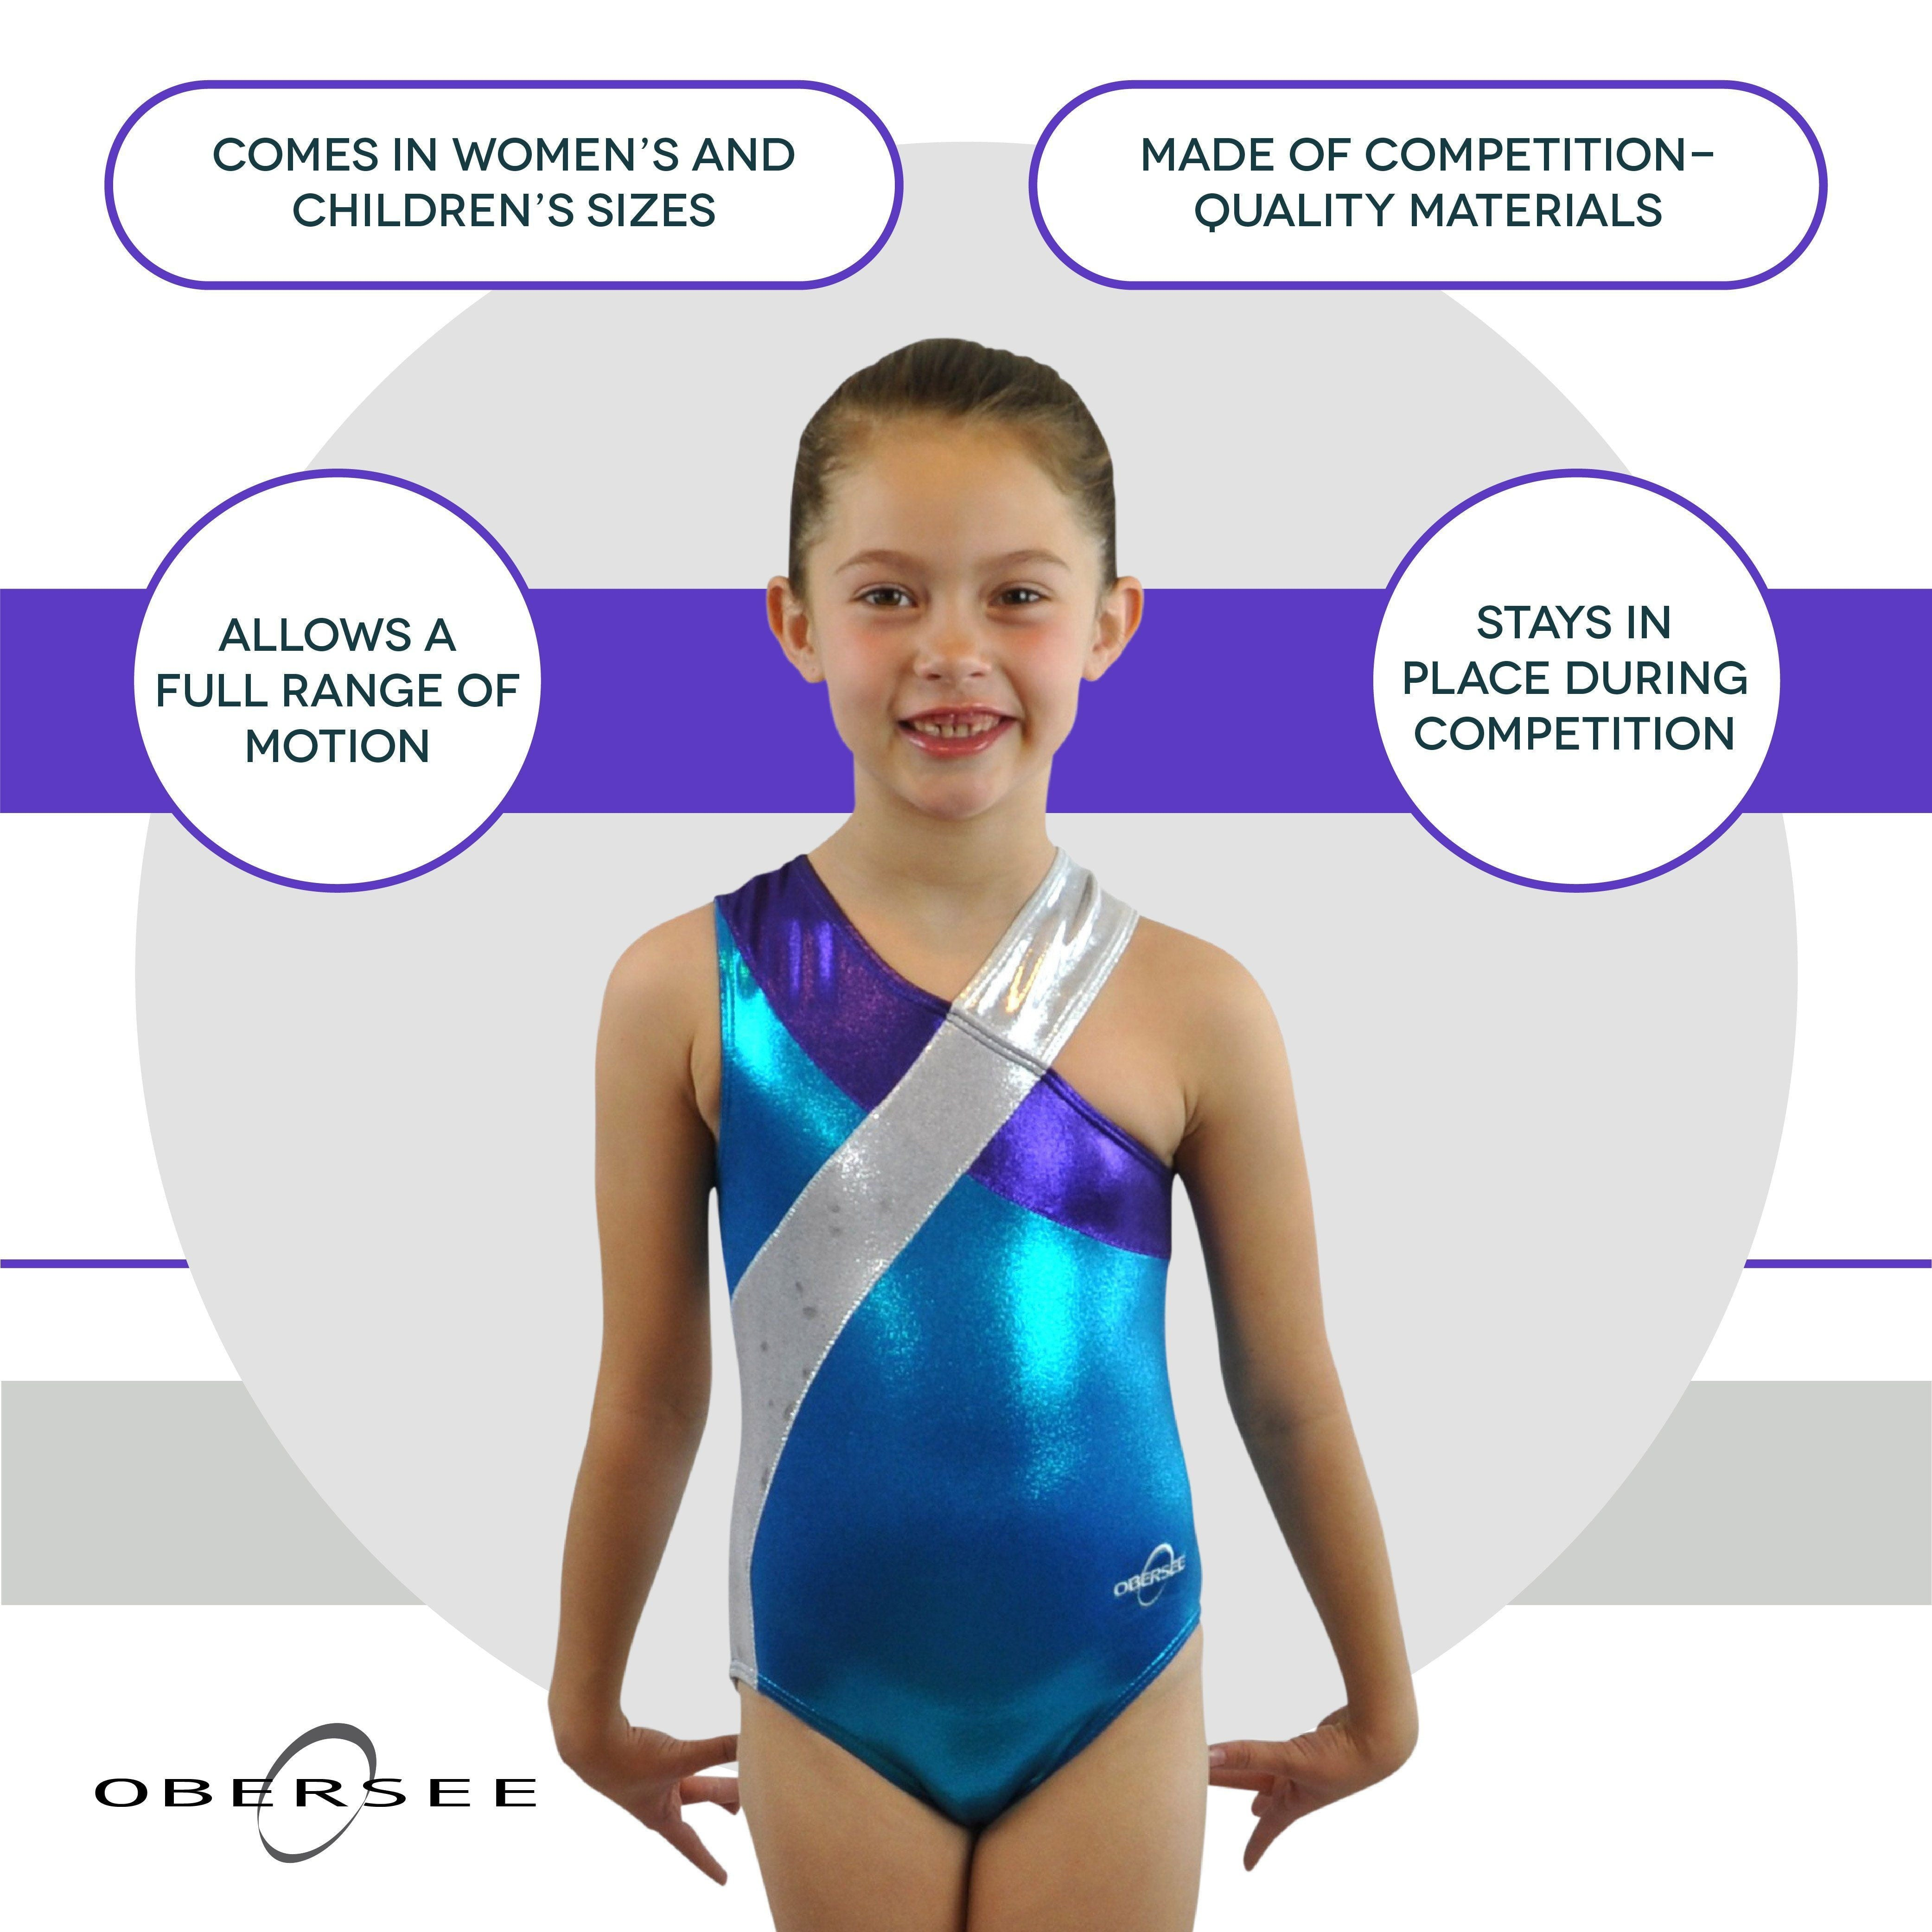 O3GL029 Obersee Girl's Girls Gymnastics Leotard - Molly Turquoise - Obersee